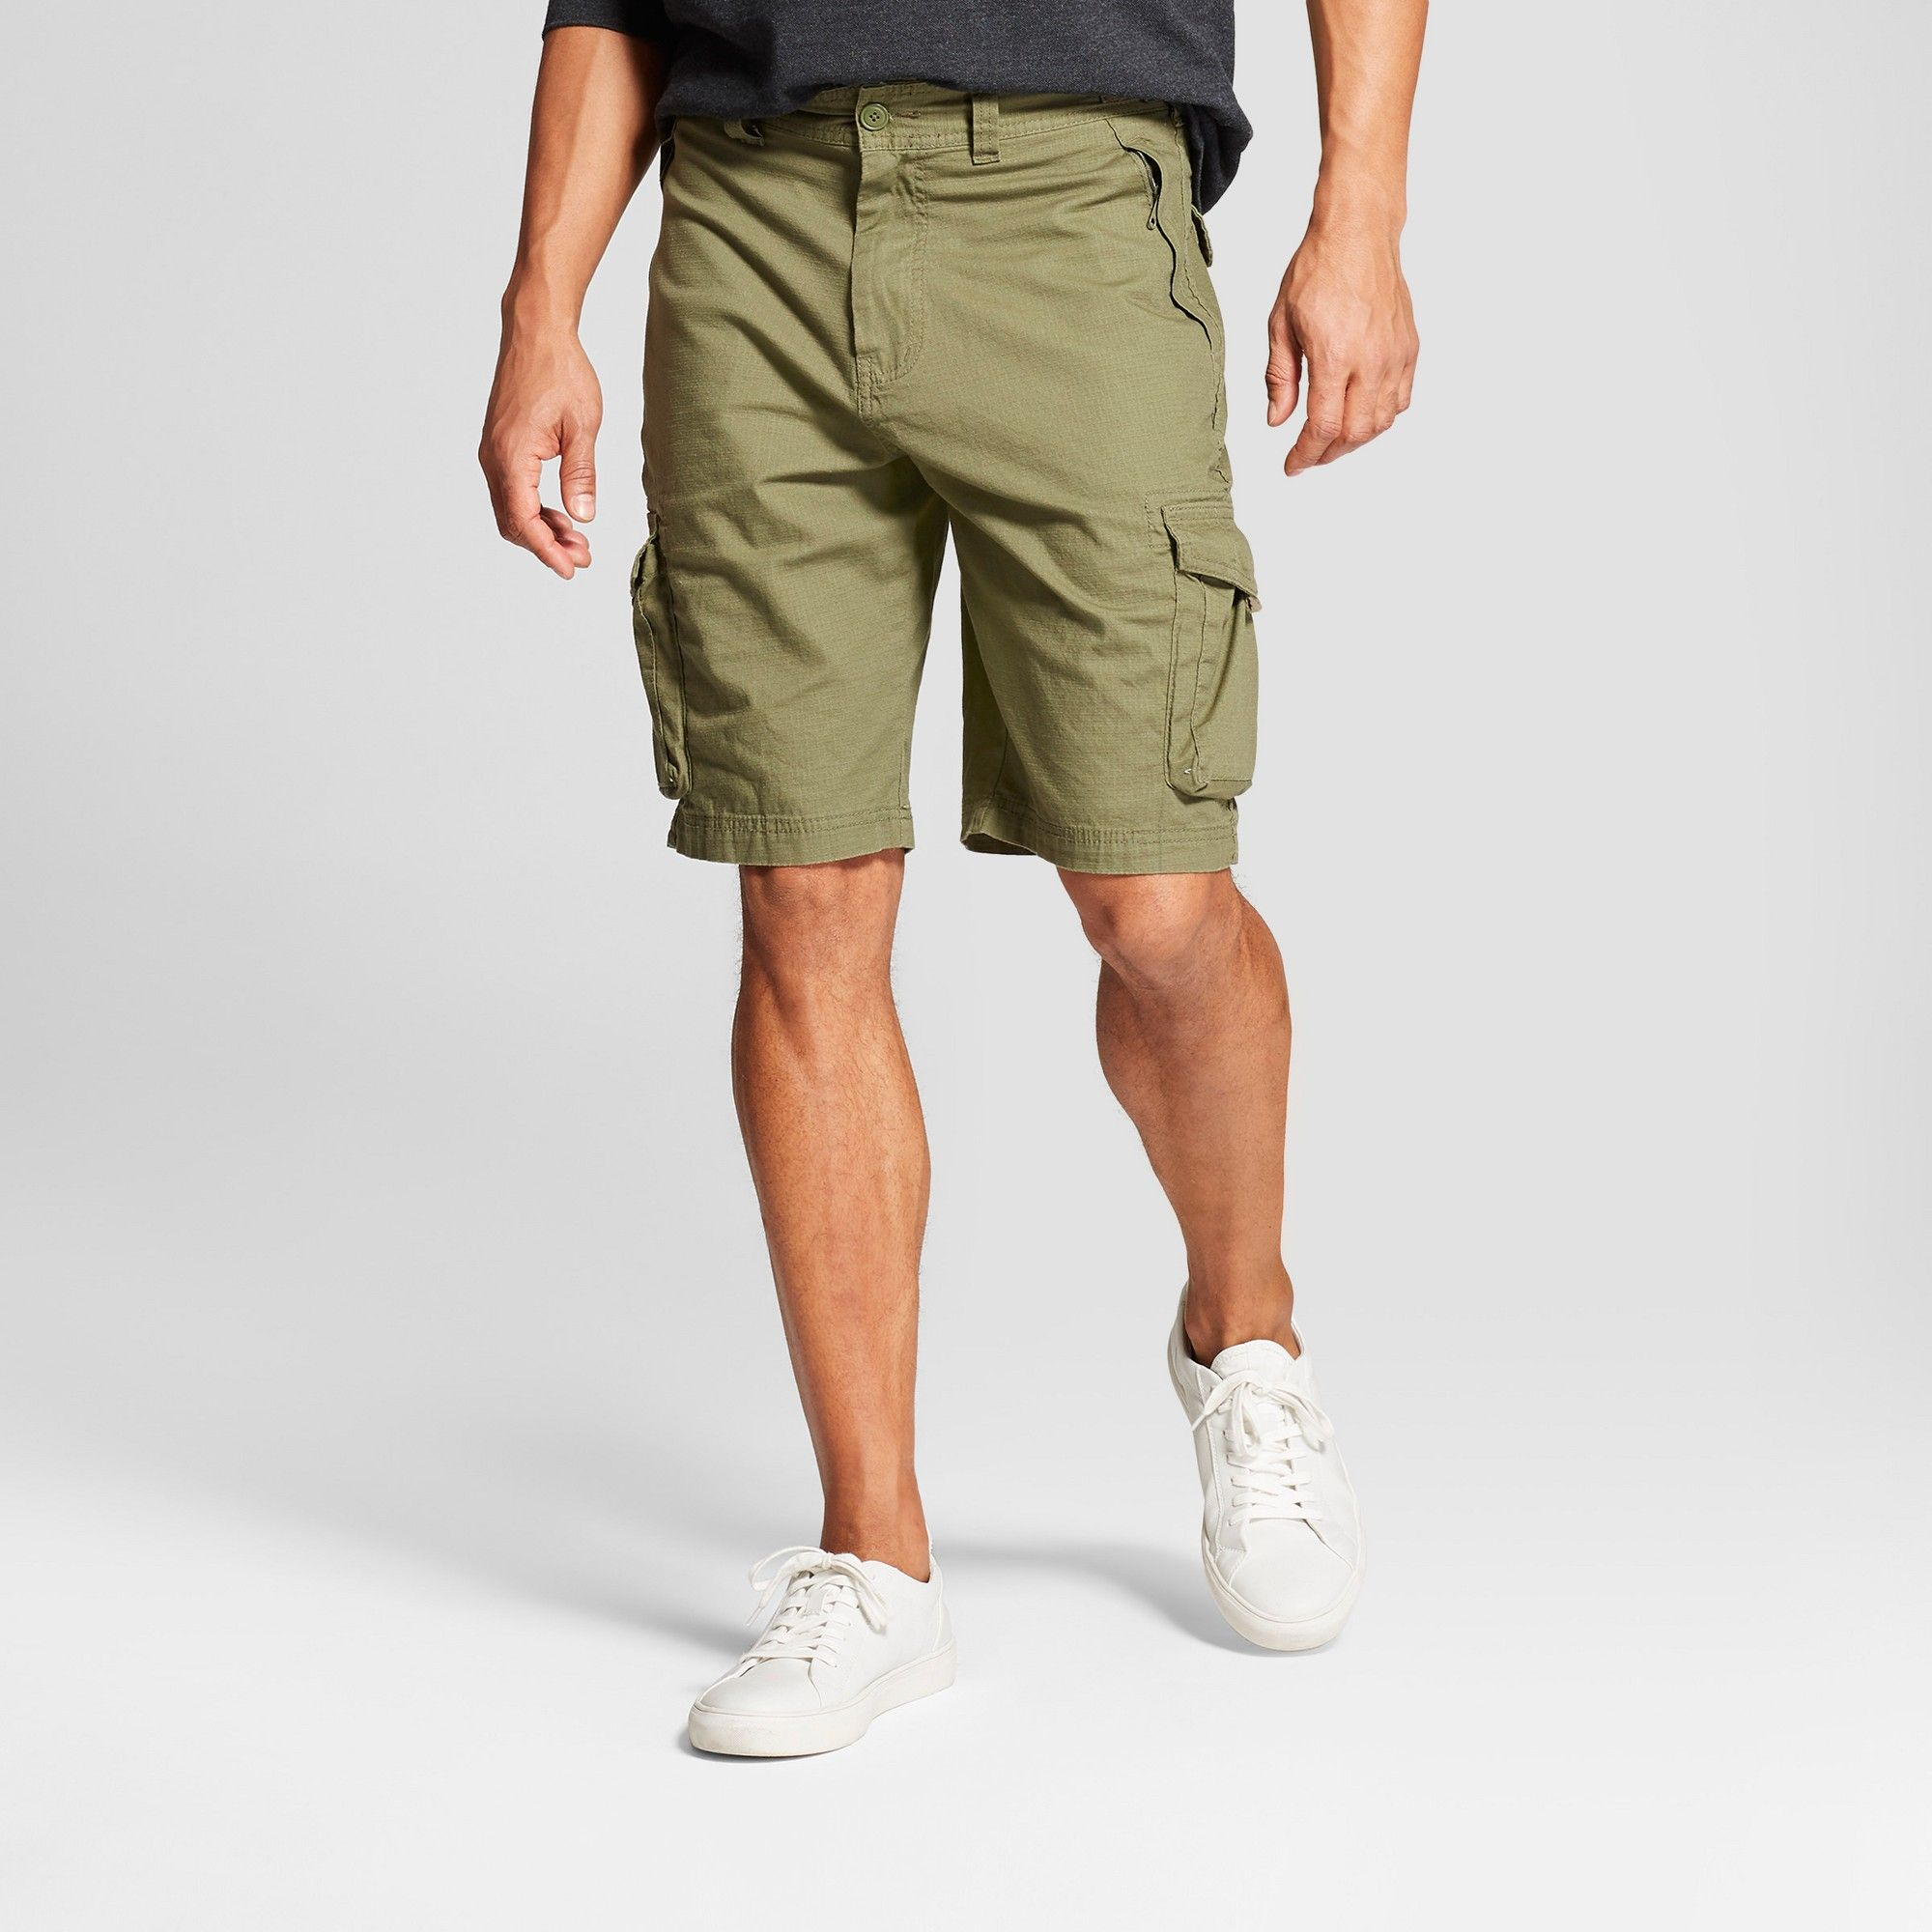 406778d0dd Men's 11 Utility Cargo Shorts - Goodfellow & Co Palm Tree 32 | Products